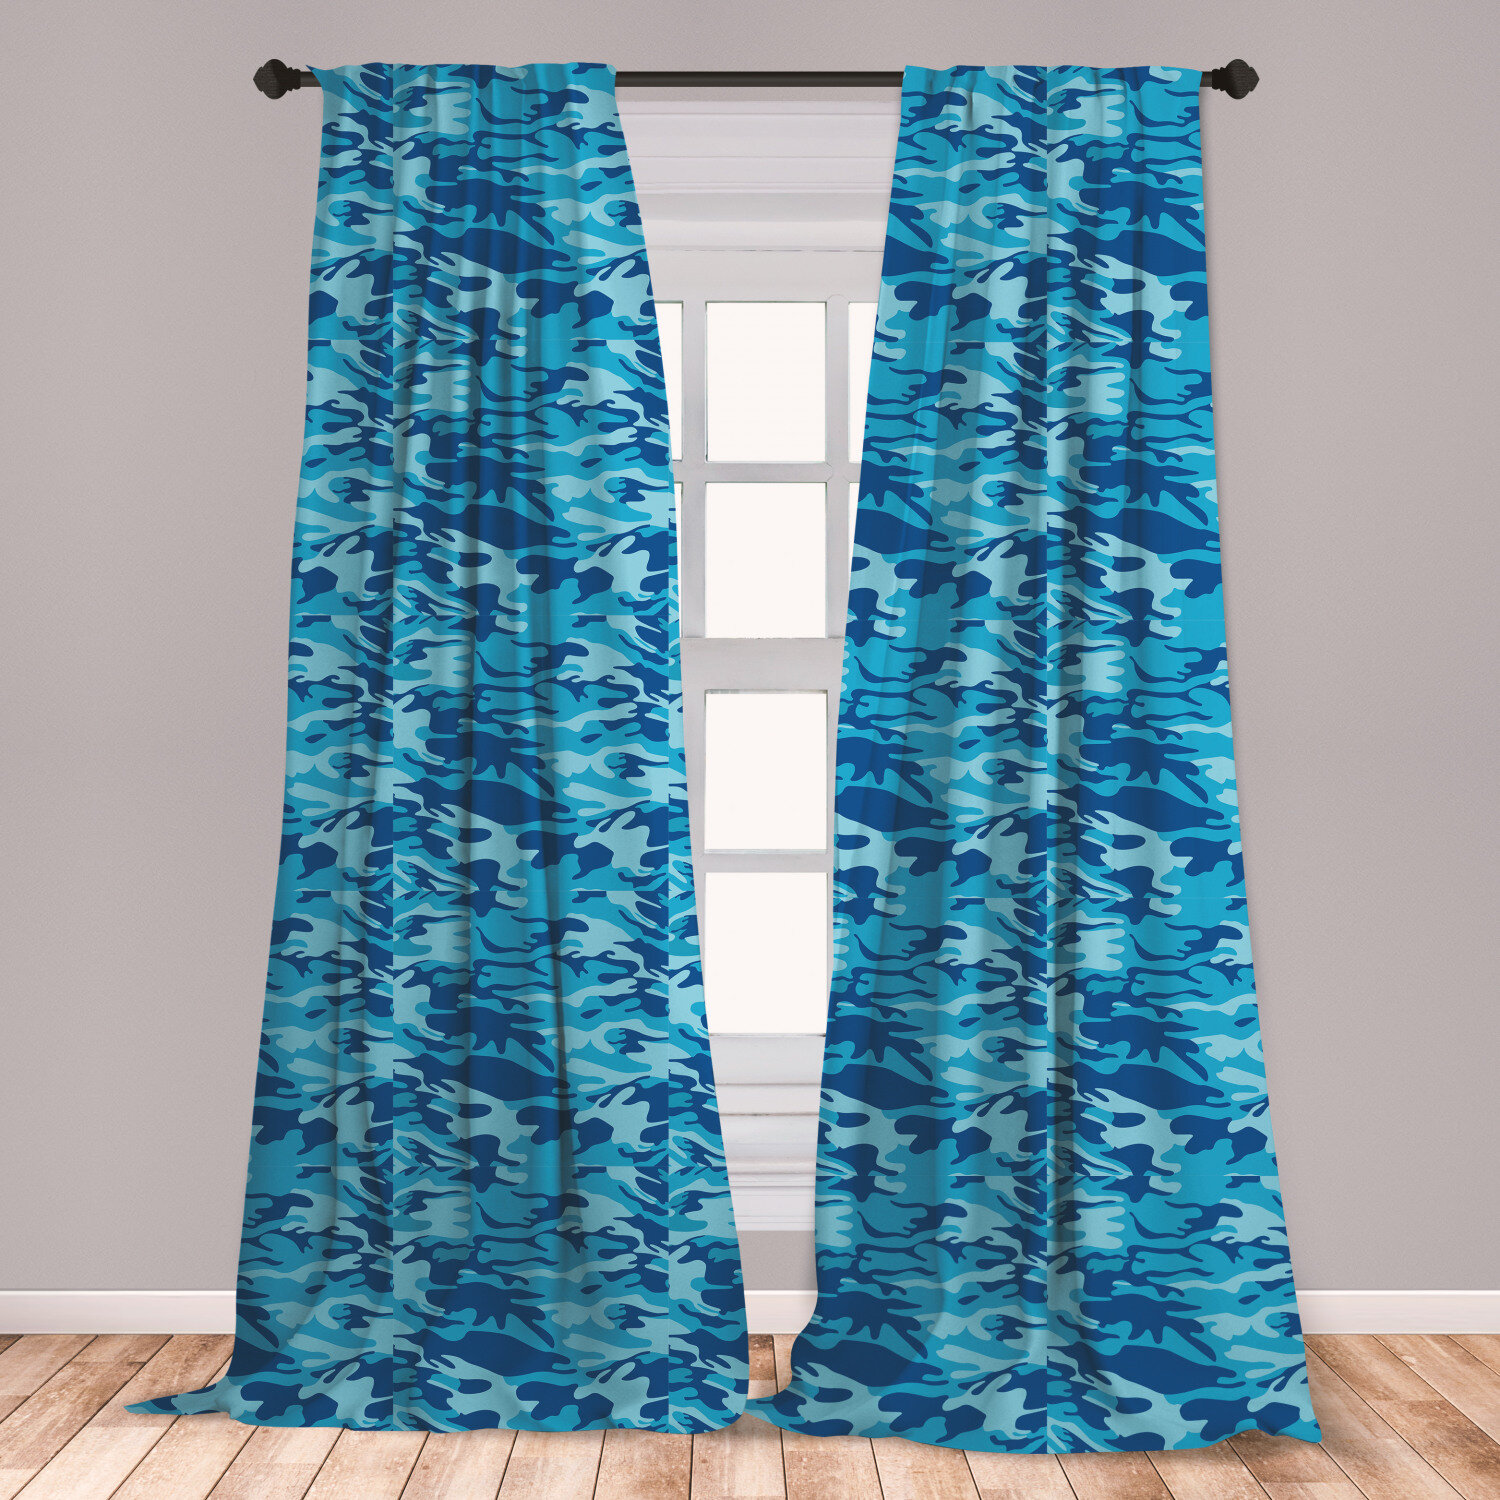 East Urban Home Ambesonne Camouflage Curtains Abstract Camouflage Costume Concealment From The Enemy Hiding Pattern Window Treatments 2 Panel Set For Living Room Bedroom Decor 56 X 63 Pale Blue Navy Blue